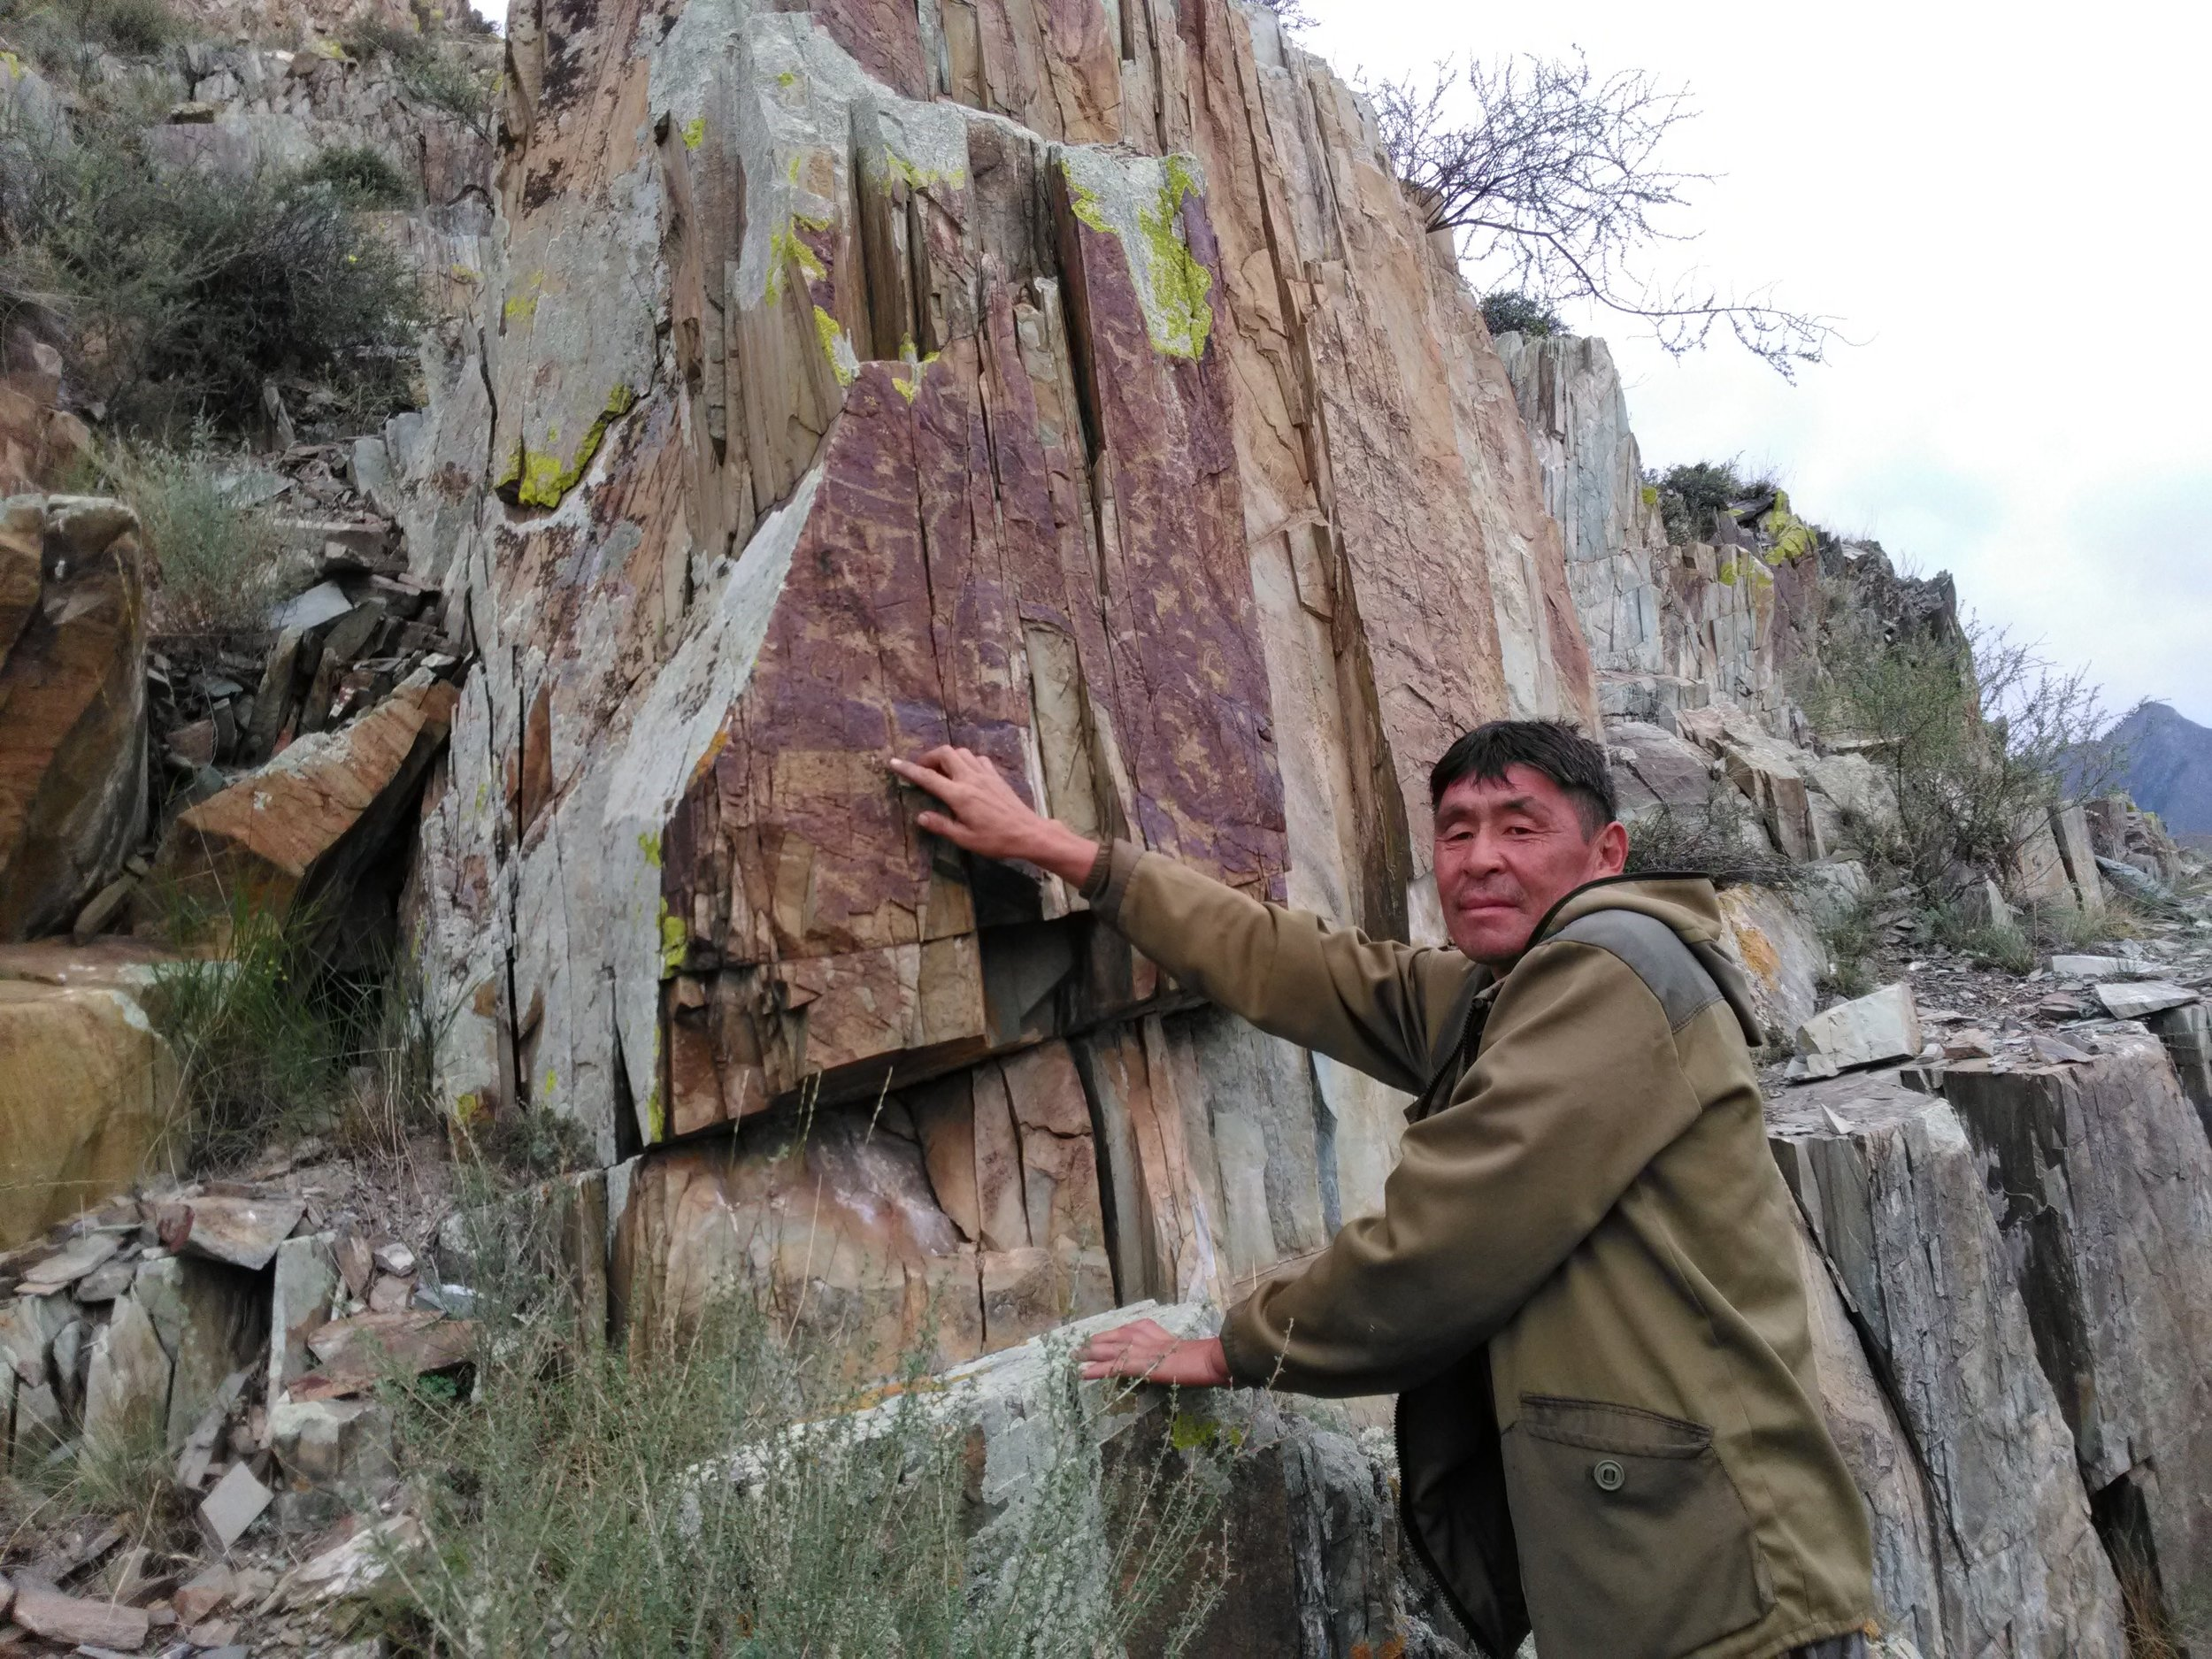 Ancient rock art